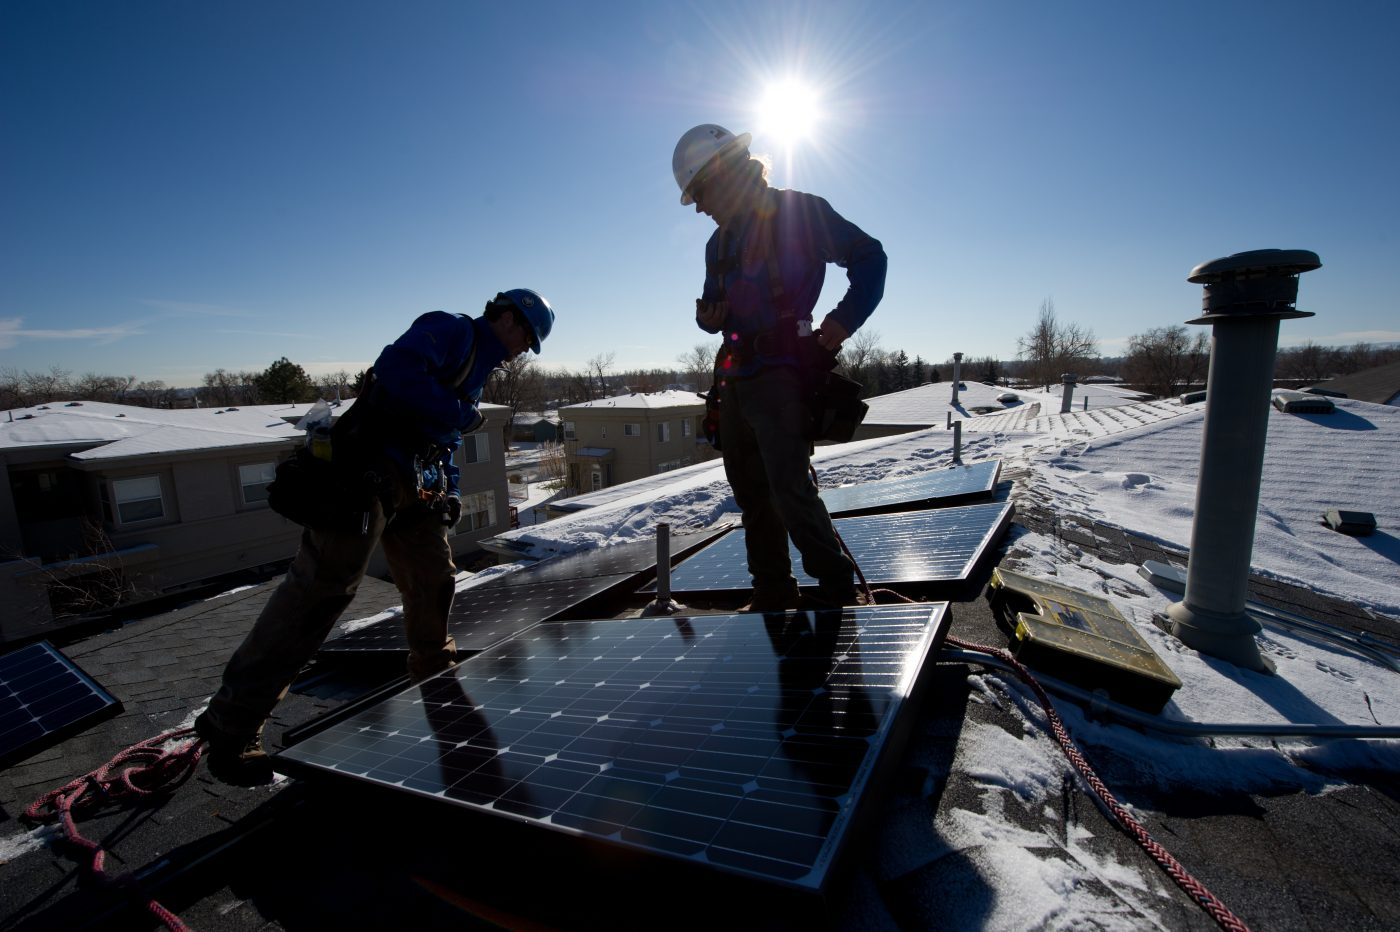 December 19, 2011- Kyle Travis, left and Jon Jackson, with Lighthouse Solar, install microcrystalline PV modules on top of Kevin Donovan's town home. (Photo by Dennis Schroeder)